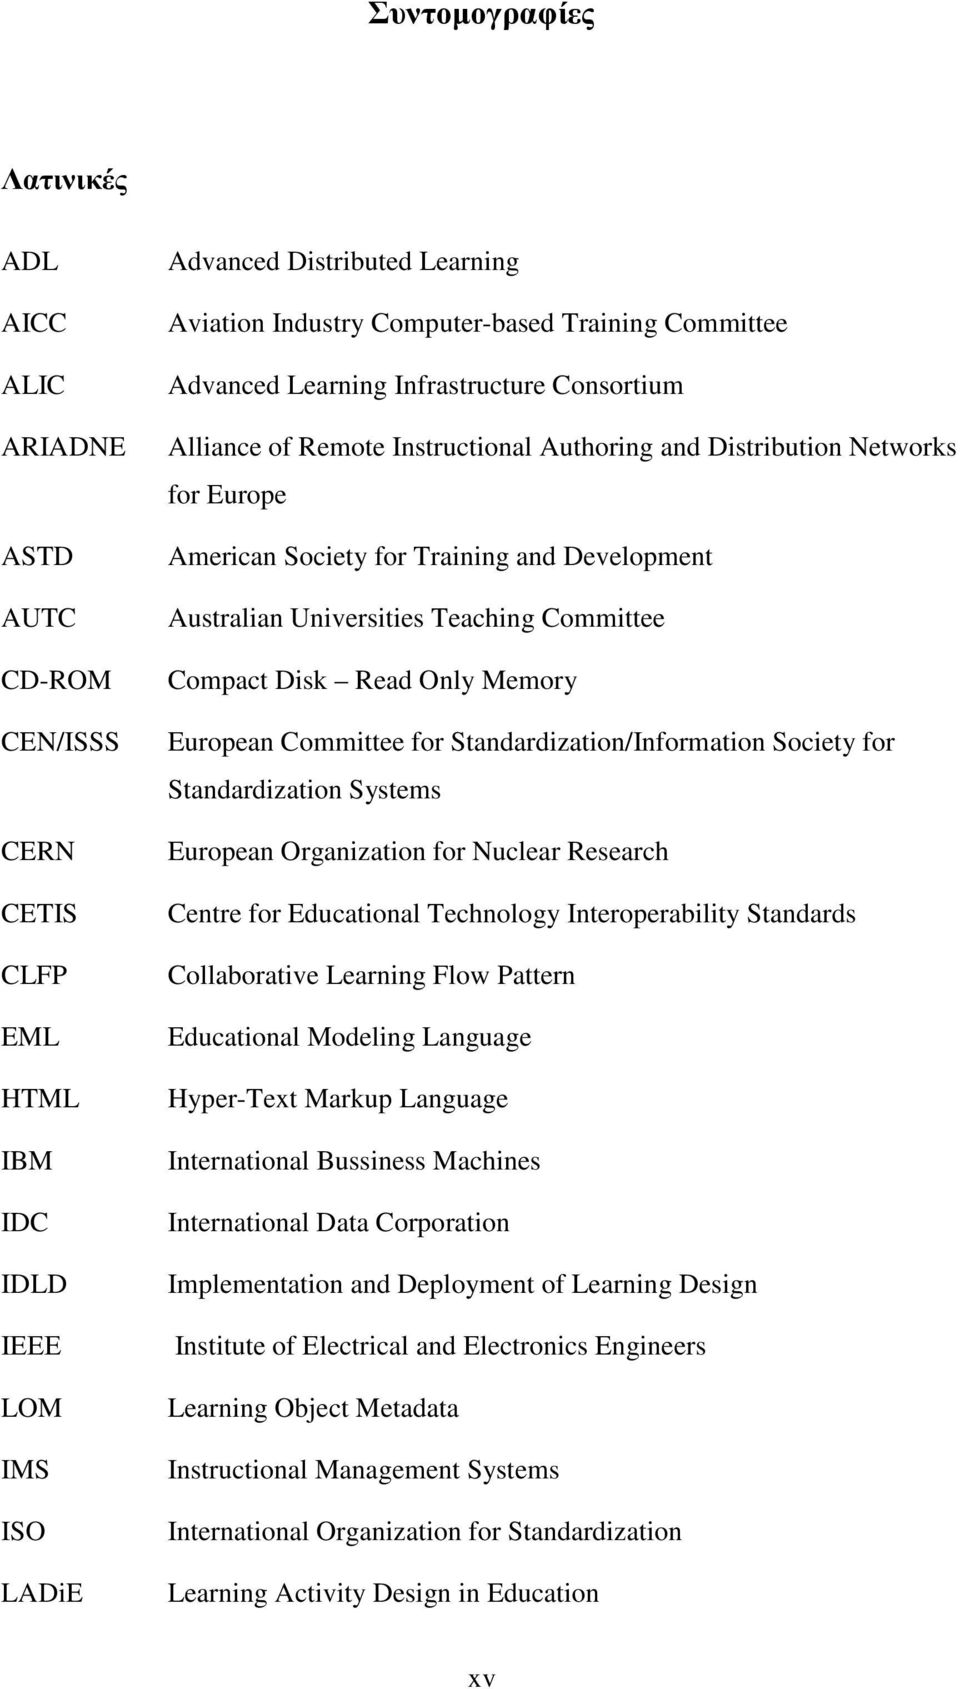 Universities Teaching Committee Compact Disk Read Only Memory European Committee for Standardization/Information Society for Standardization Systems European Organization for Nuclear Research Centre